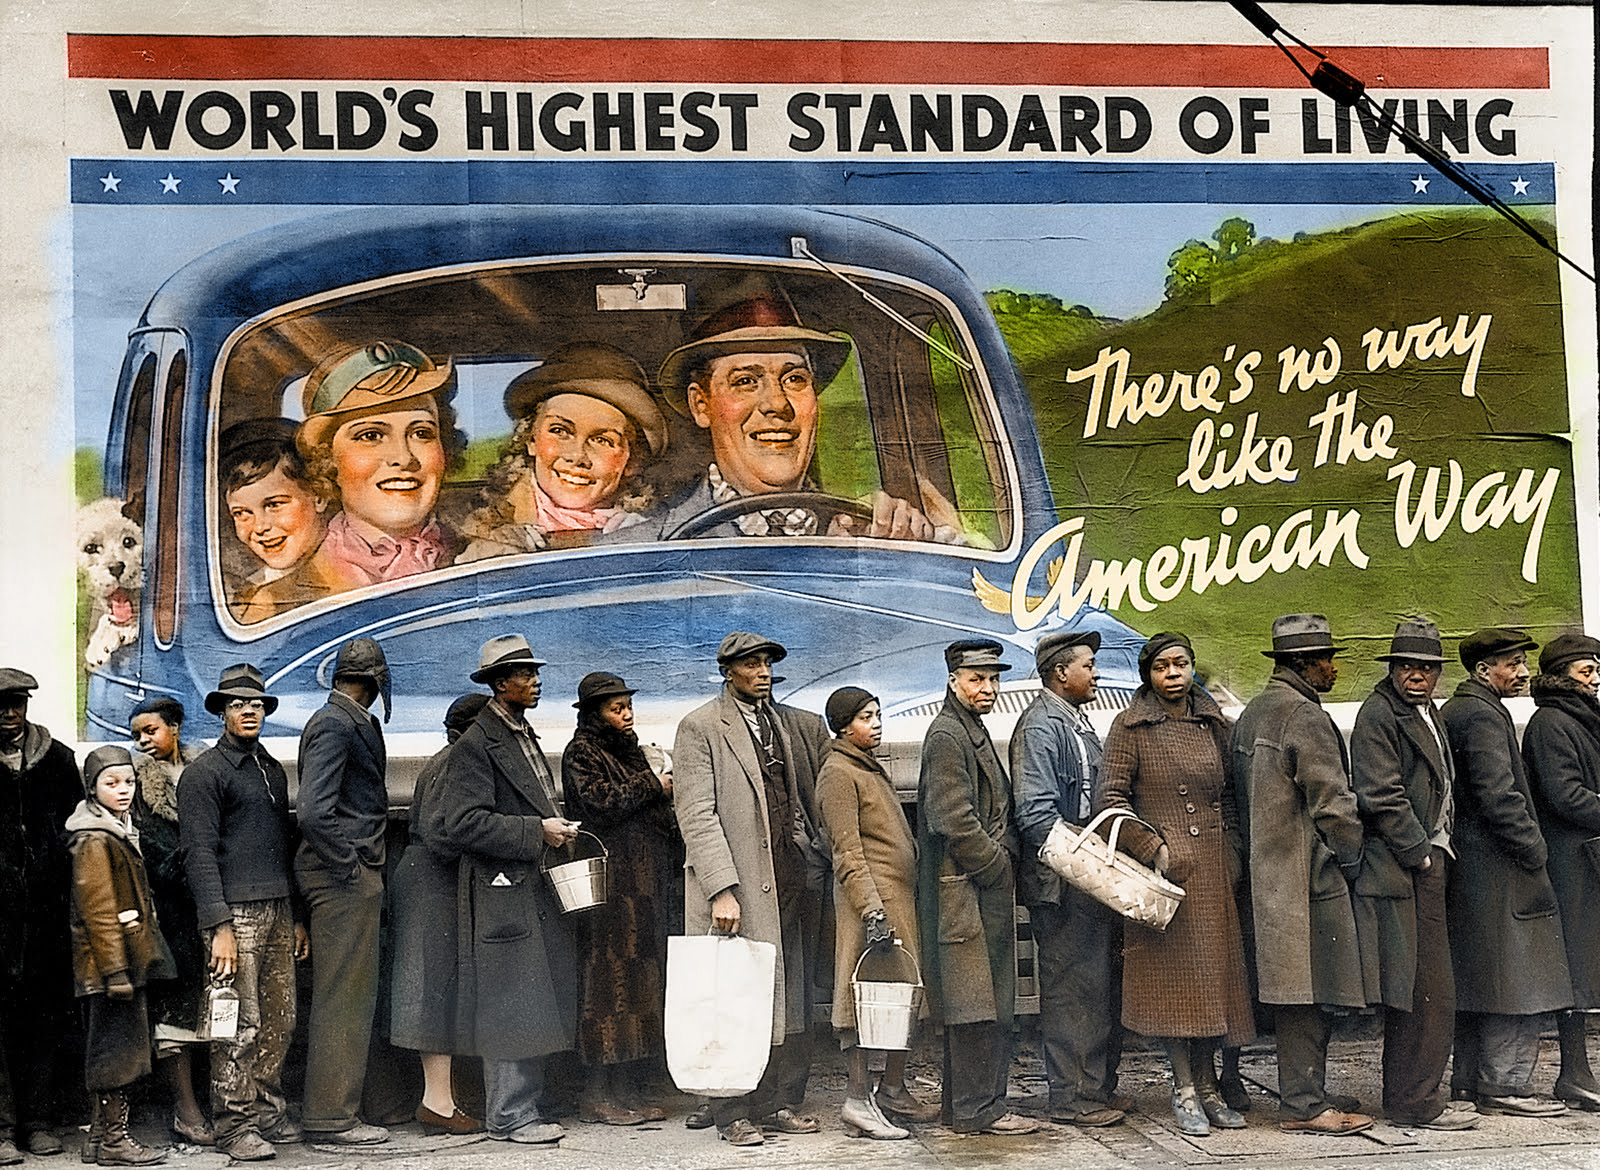 Circa 1937. African American flood victims lining up to get food and clothing from a relief station in front of a billboard ironically proclaiming 'World's Highest Standard of Living — There's No Way Like the American Way.'